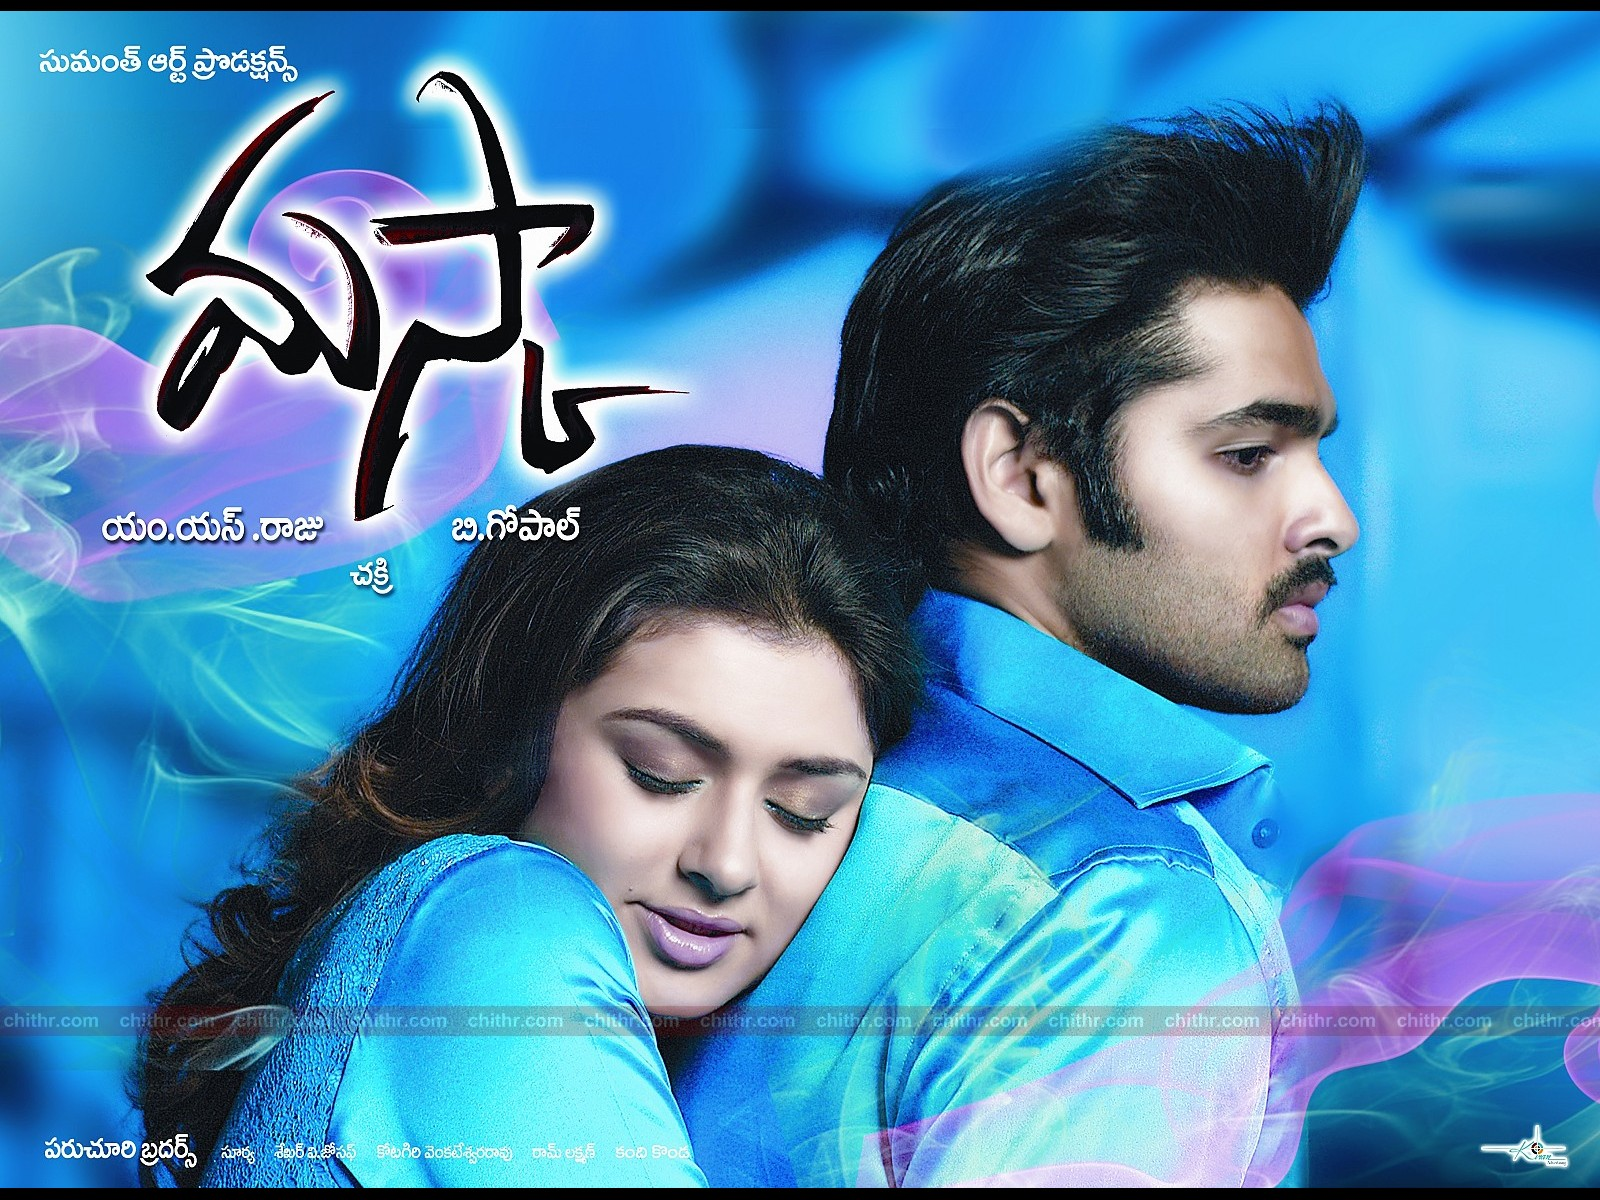 MASKA (2008) TELUGU MP3 SONGS FREE DOWNLOAD